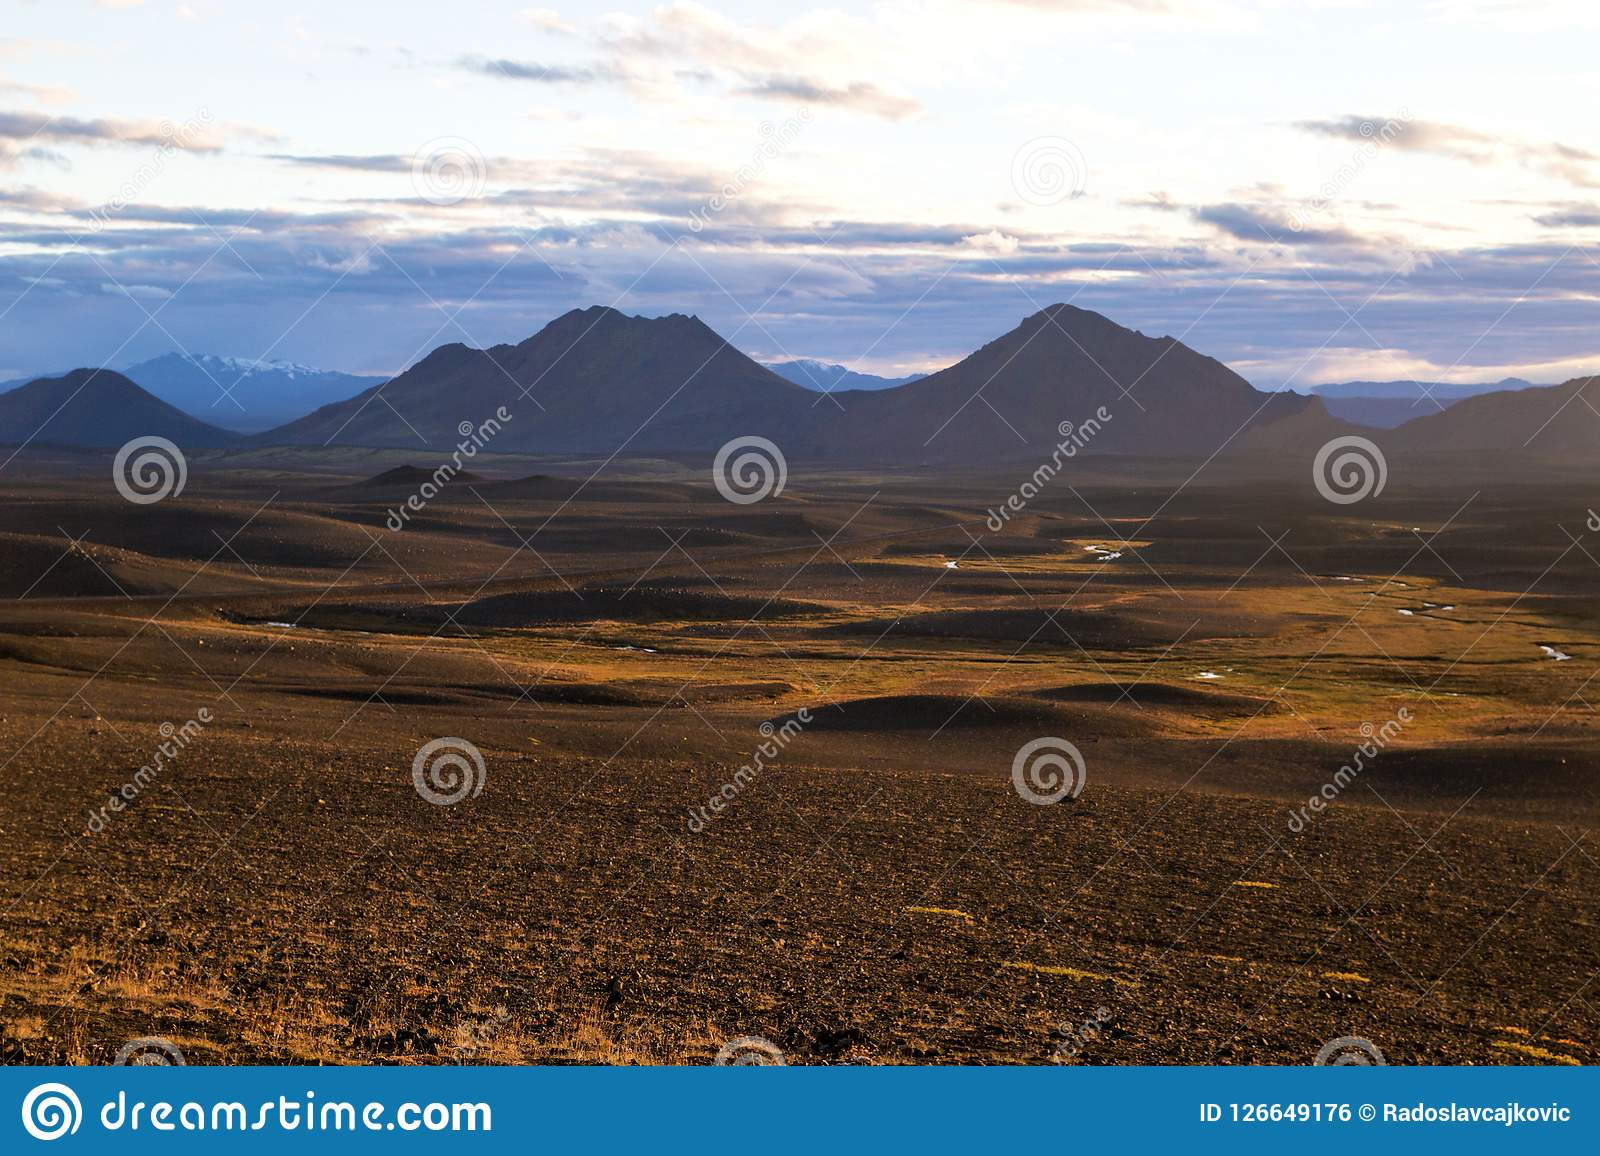 Iceland`s inland. Central Highlands of Iceland, red brown mountain landscape shaped by volcanic activity